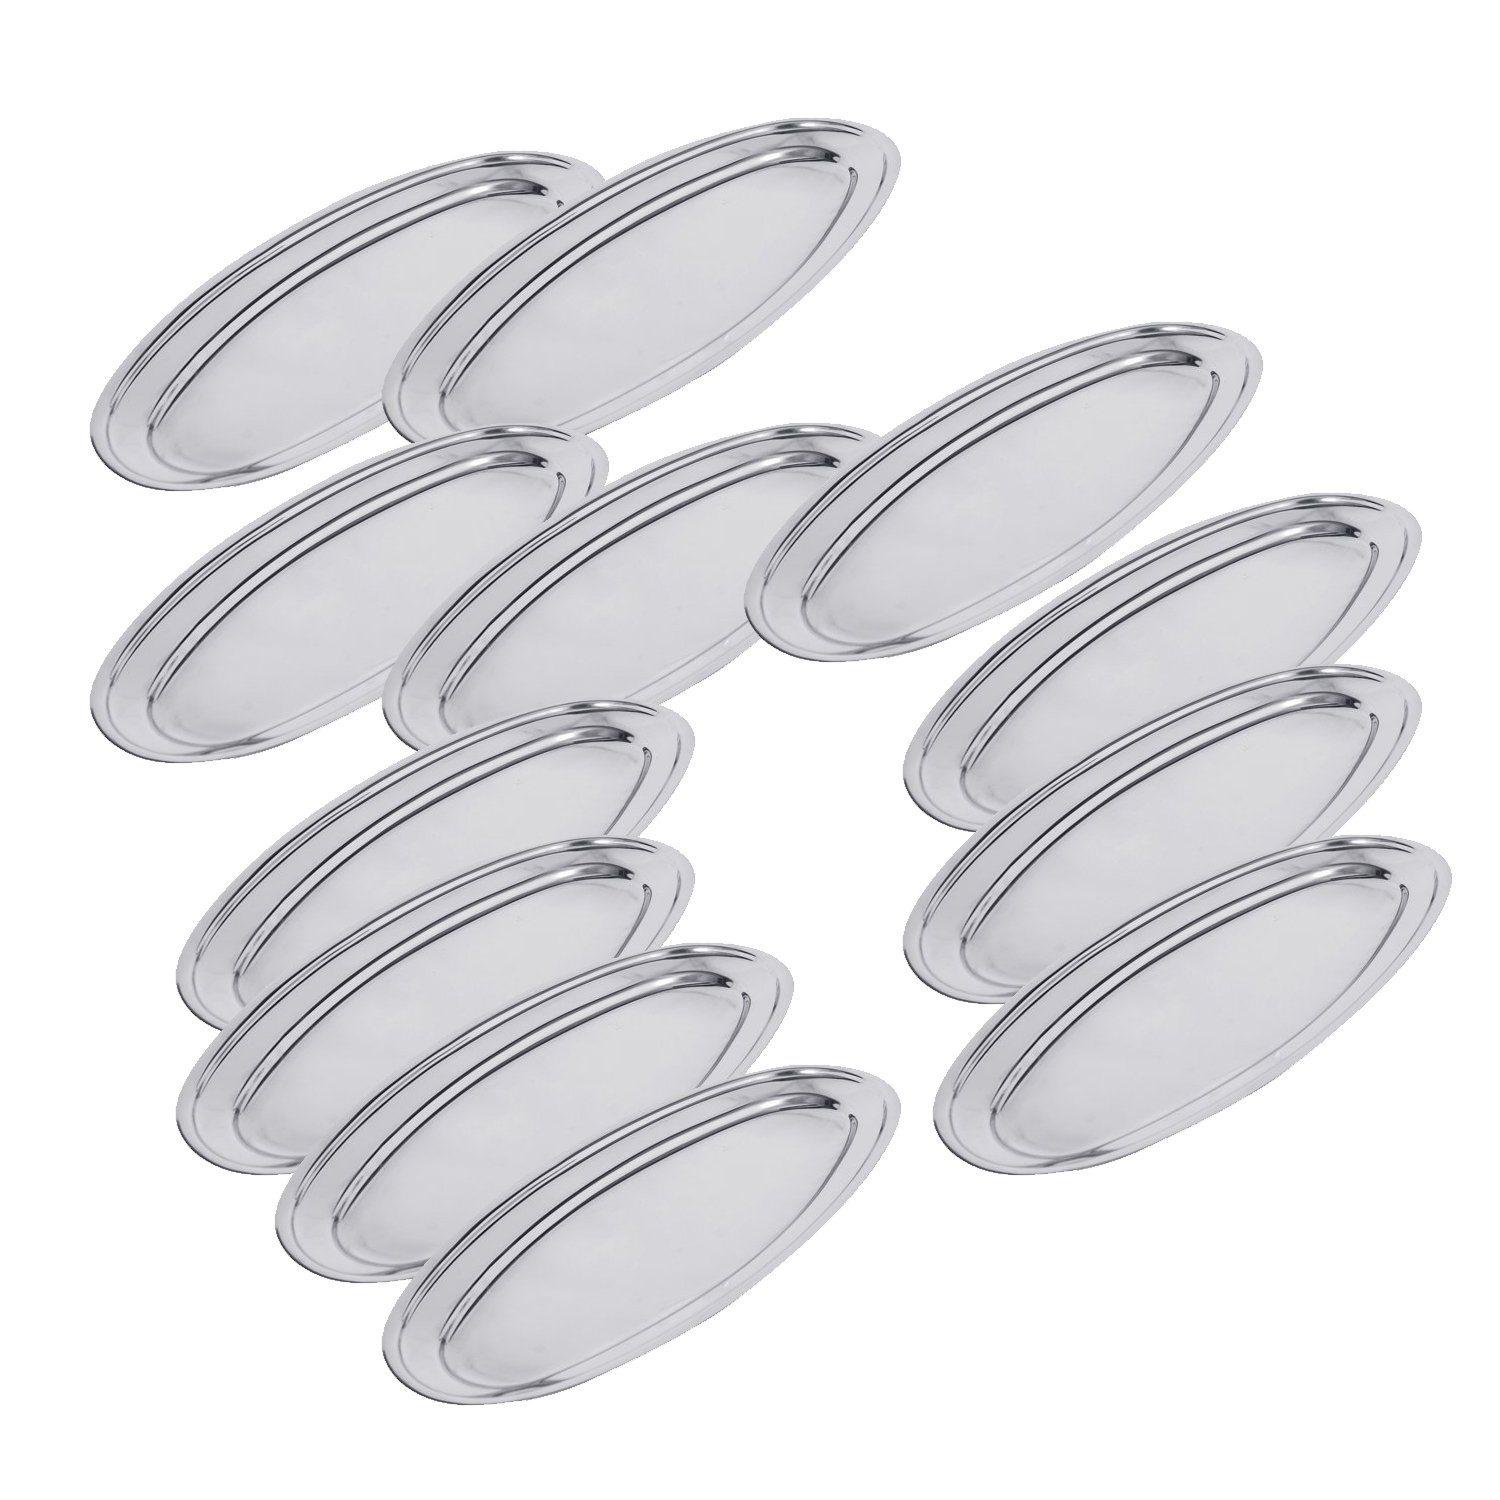 Meat Dish Serving Dish Kosma Set of 12 Stainless Steel Oval Plate Oval Tray Platter 20 cm Serving Tray Rice Plate Set